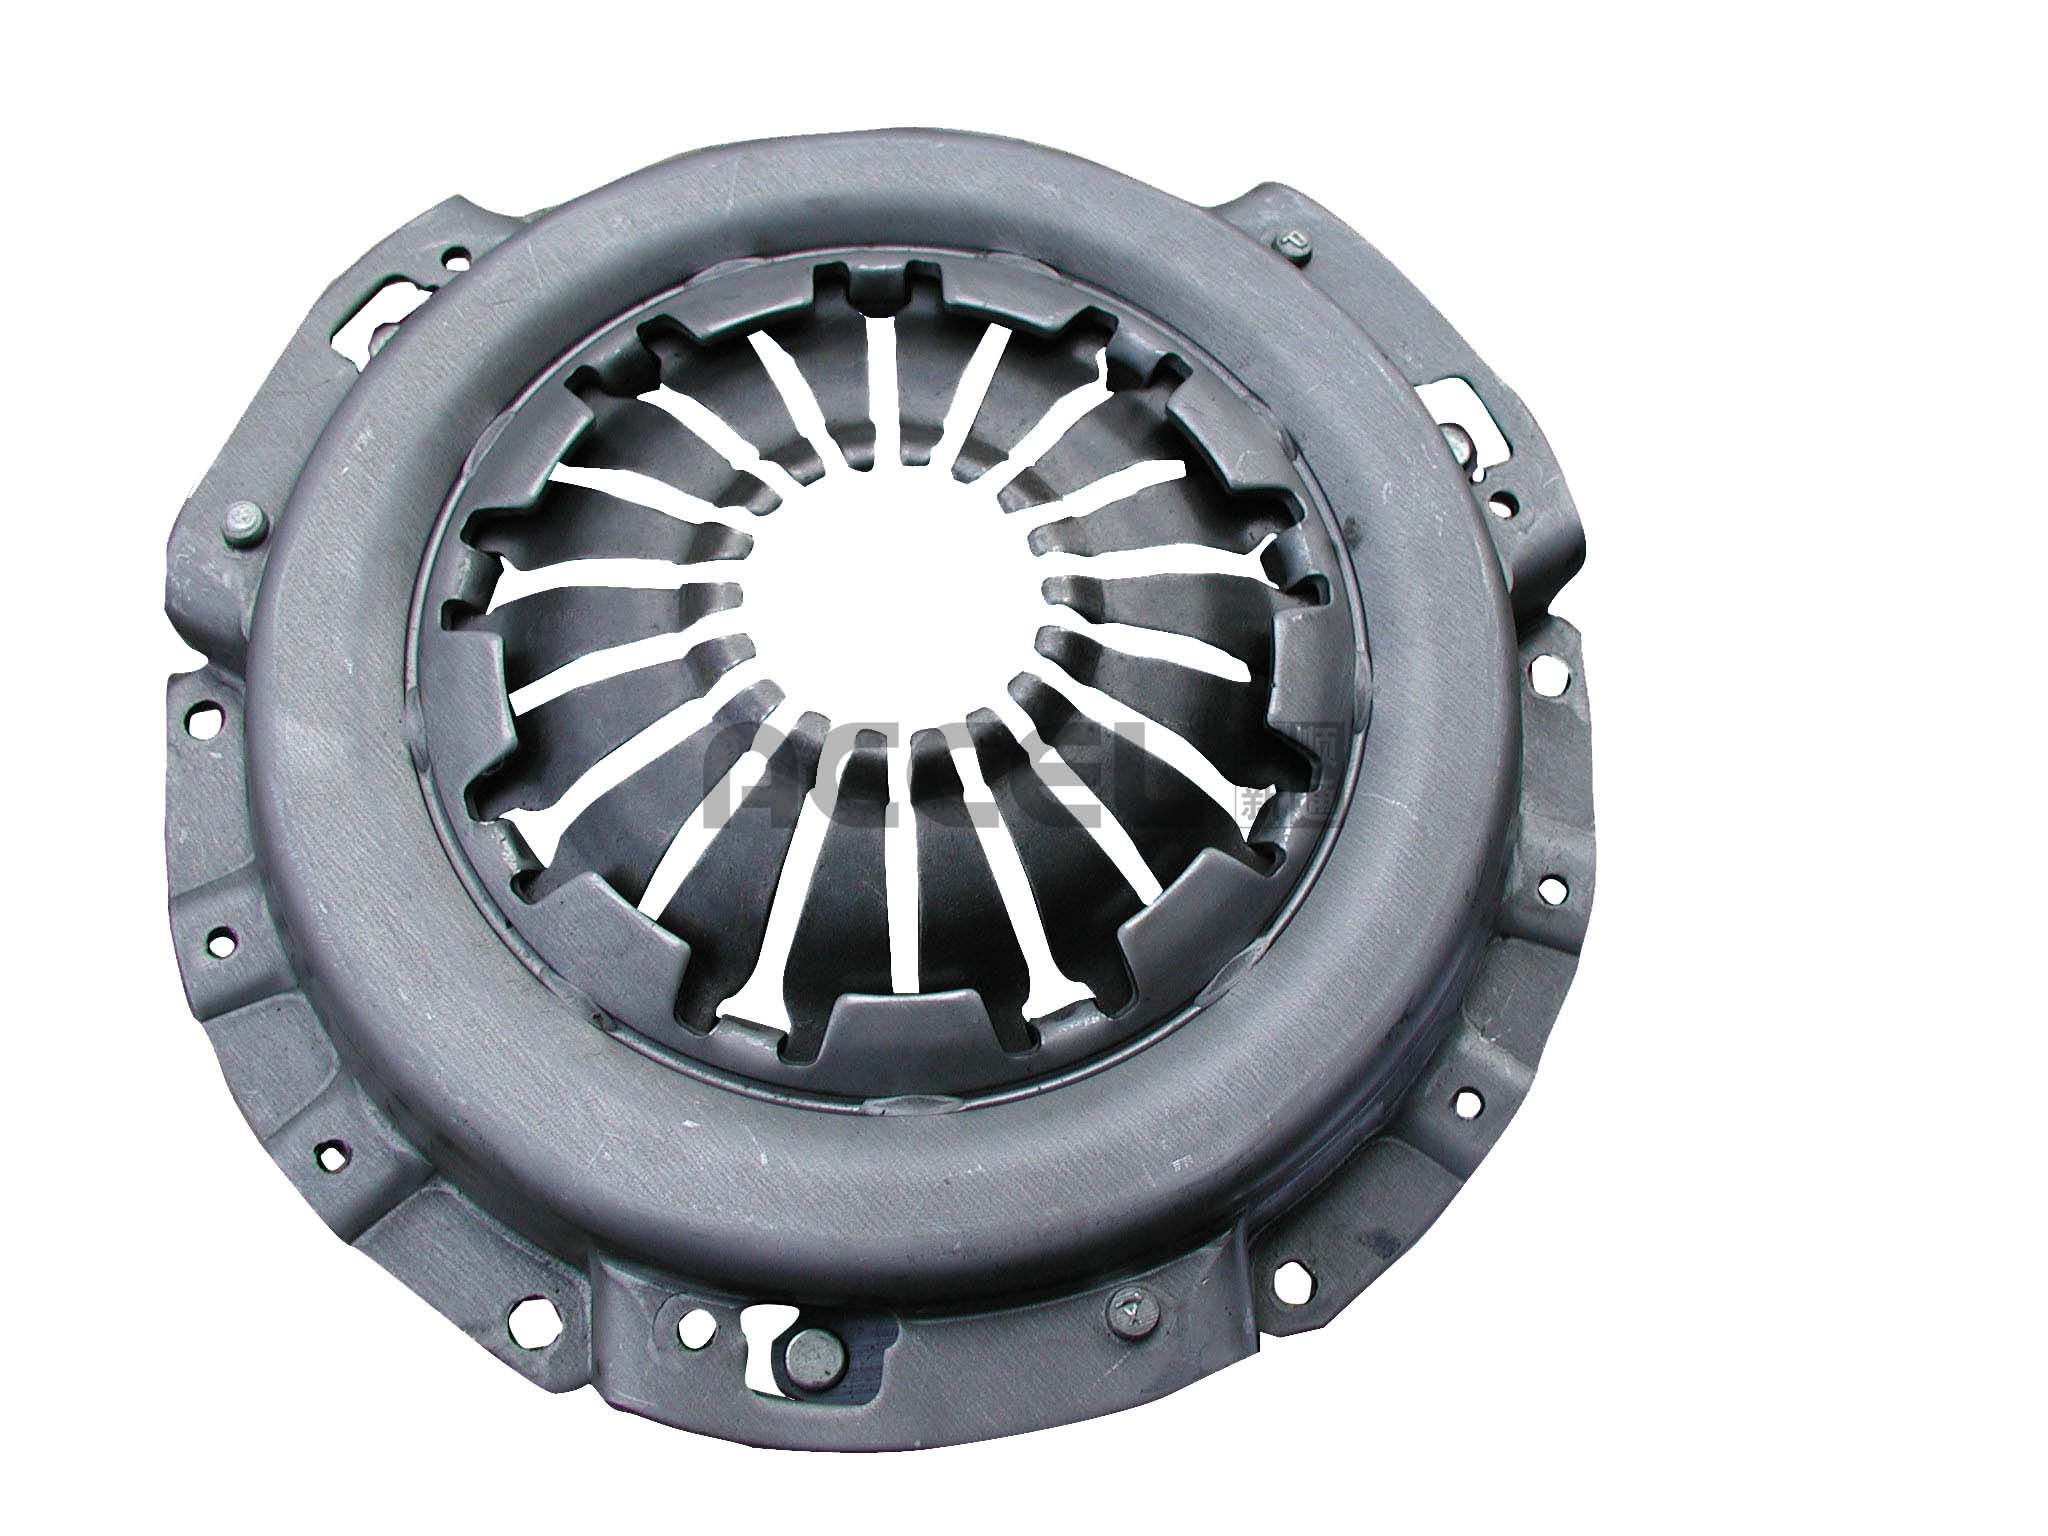 Clutch Cover/OE:DWC-34/206*133*250/CDW-008/DAEWOO/LY331/96285360